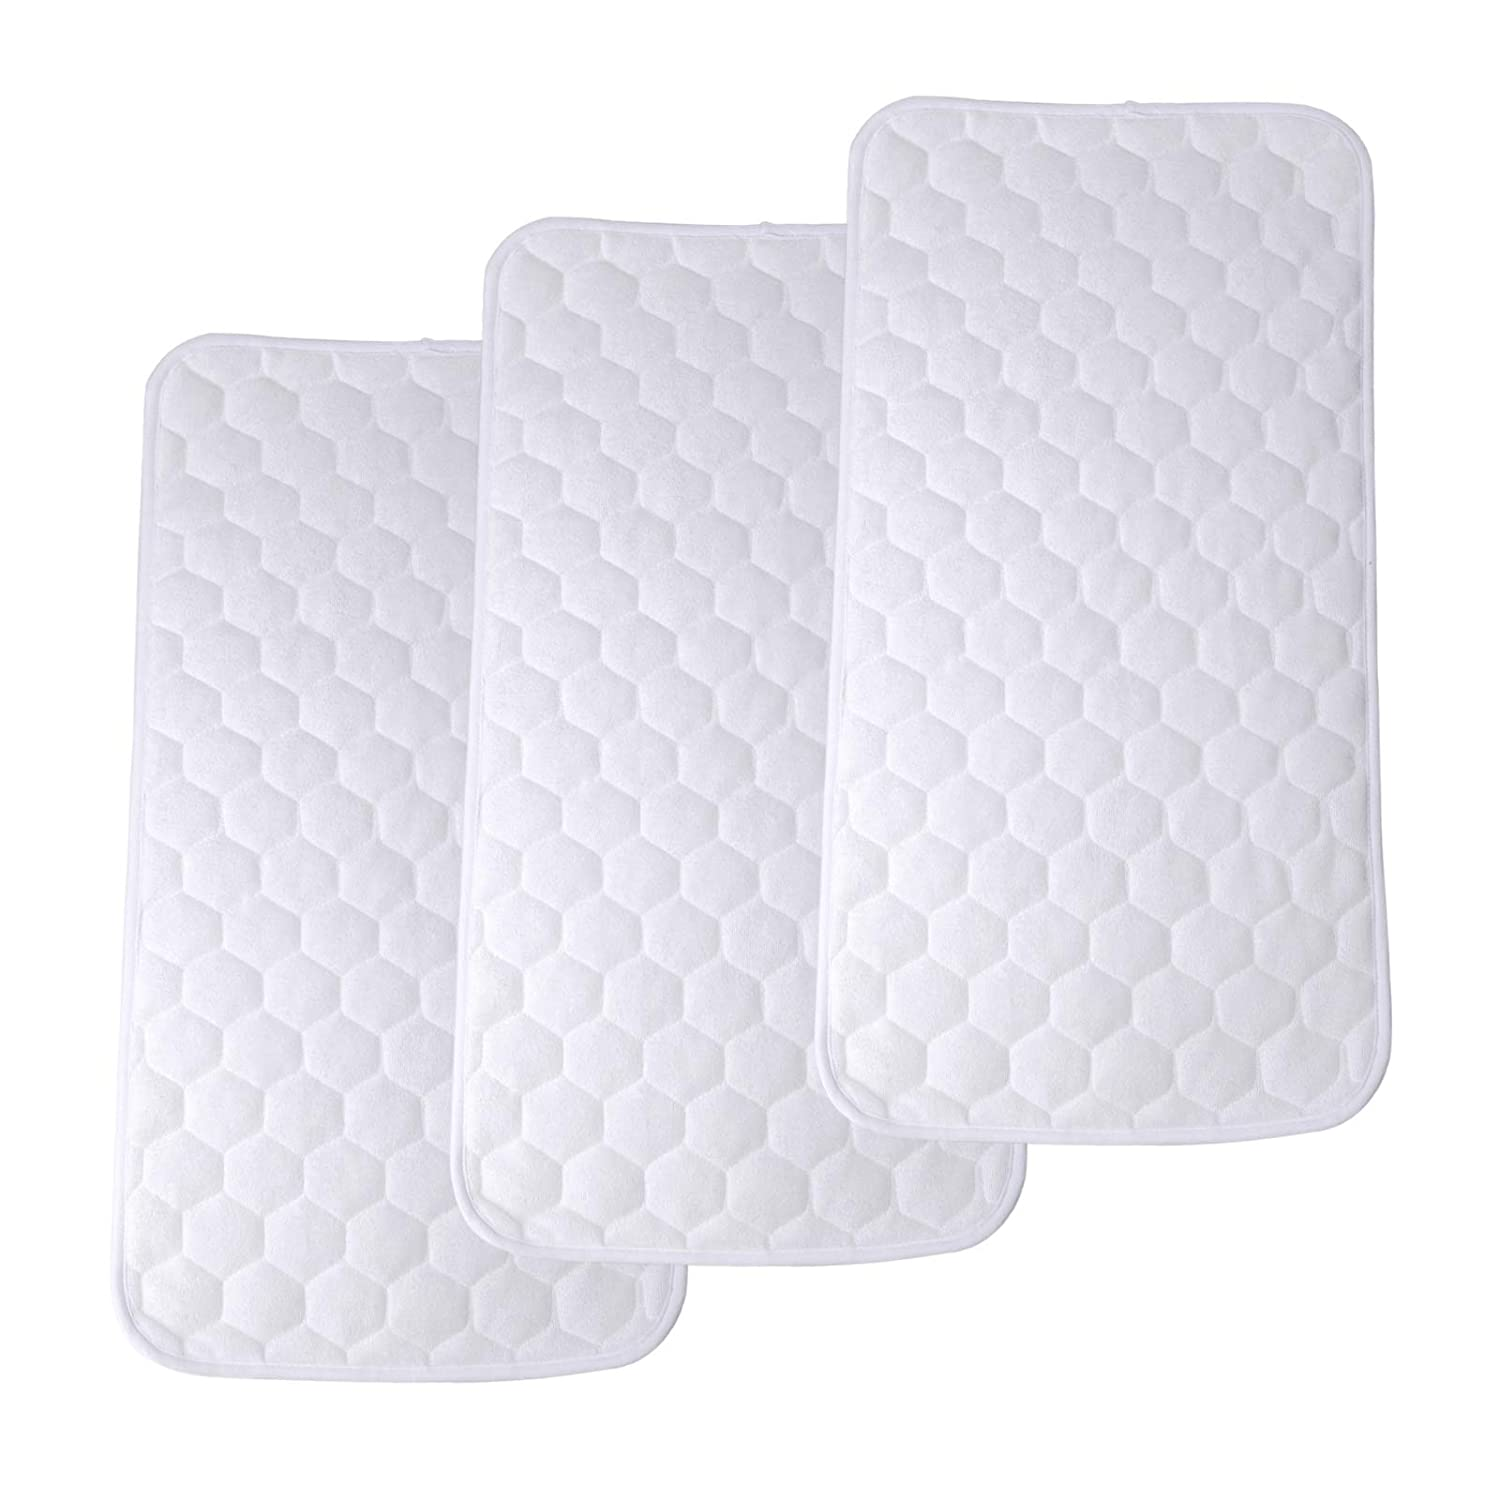 27/'/'x 13/'/' Thicker Soft Baby Diaper Liners Portable Waterproof Changing Mat Cover for Infant Diaper Changing Table Pad 3 Pcs Bamboo Waterproof Changing Pad Liners